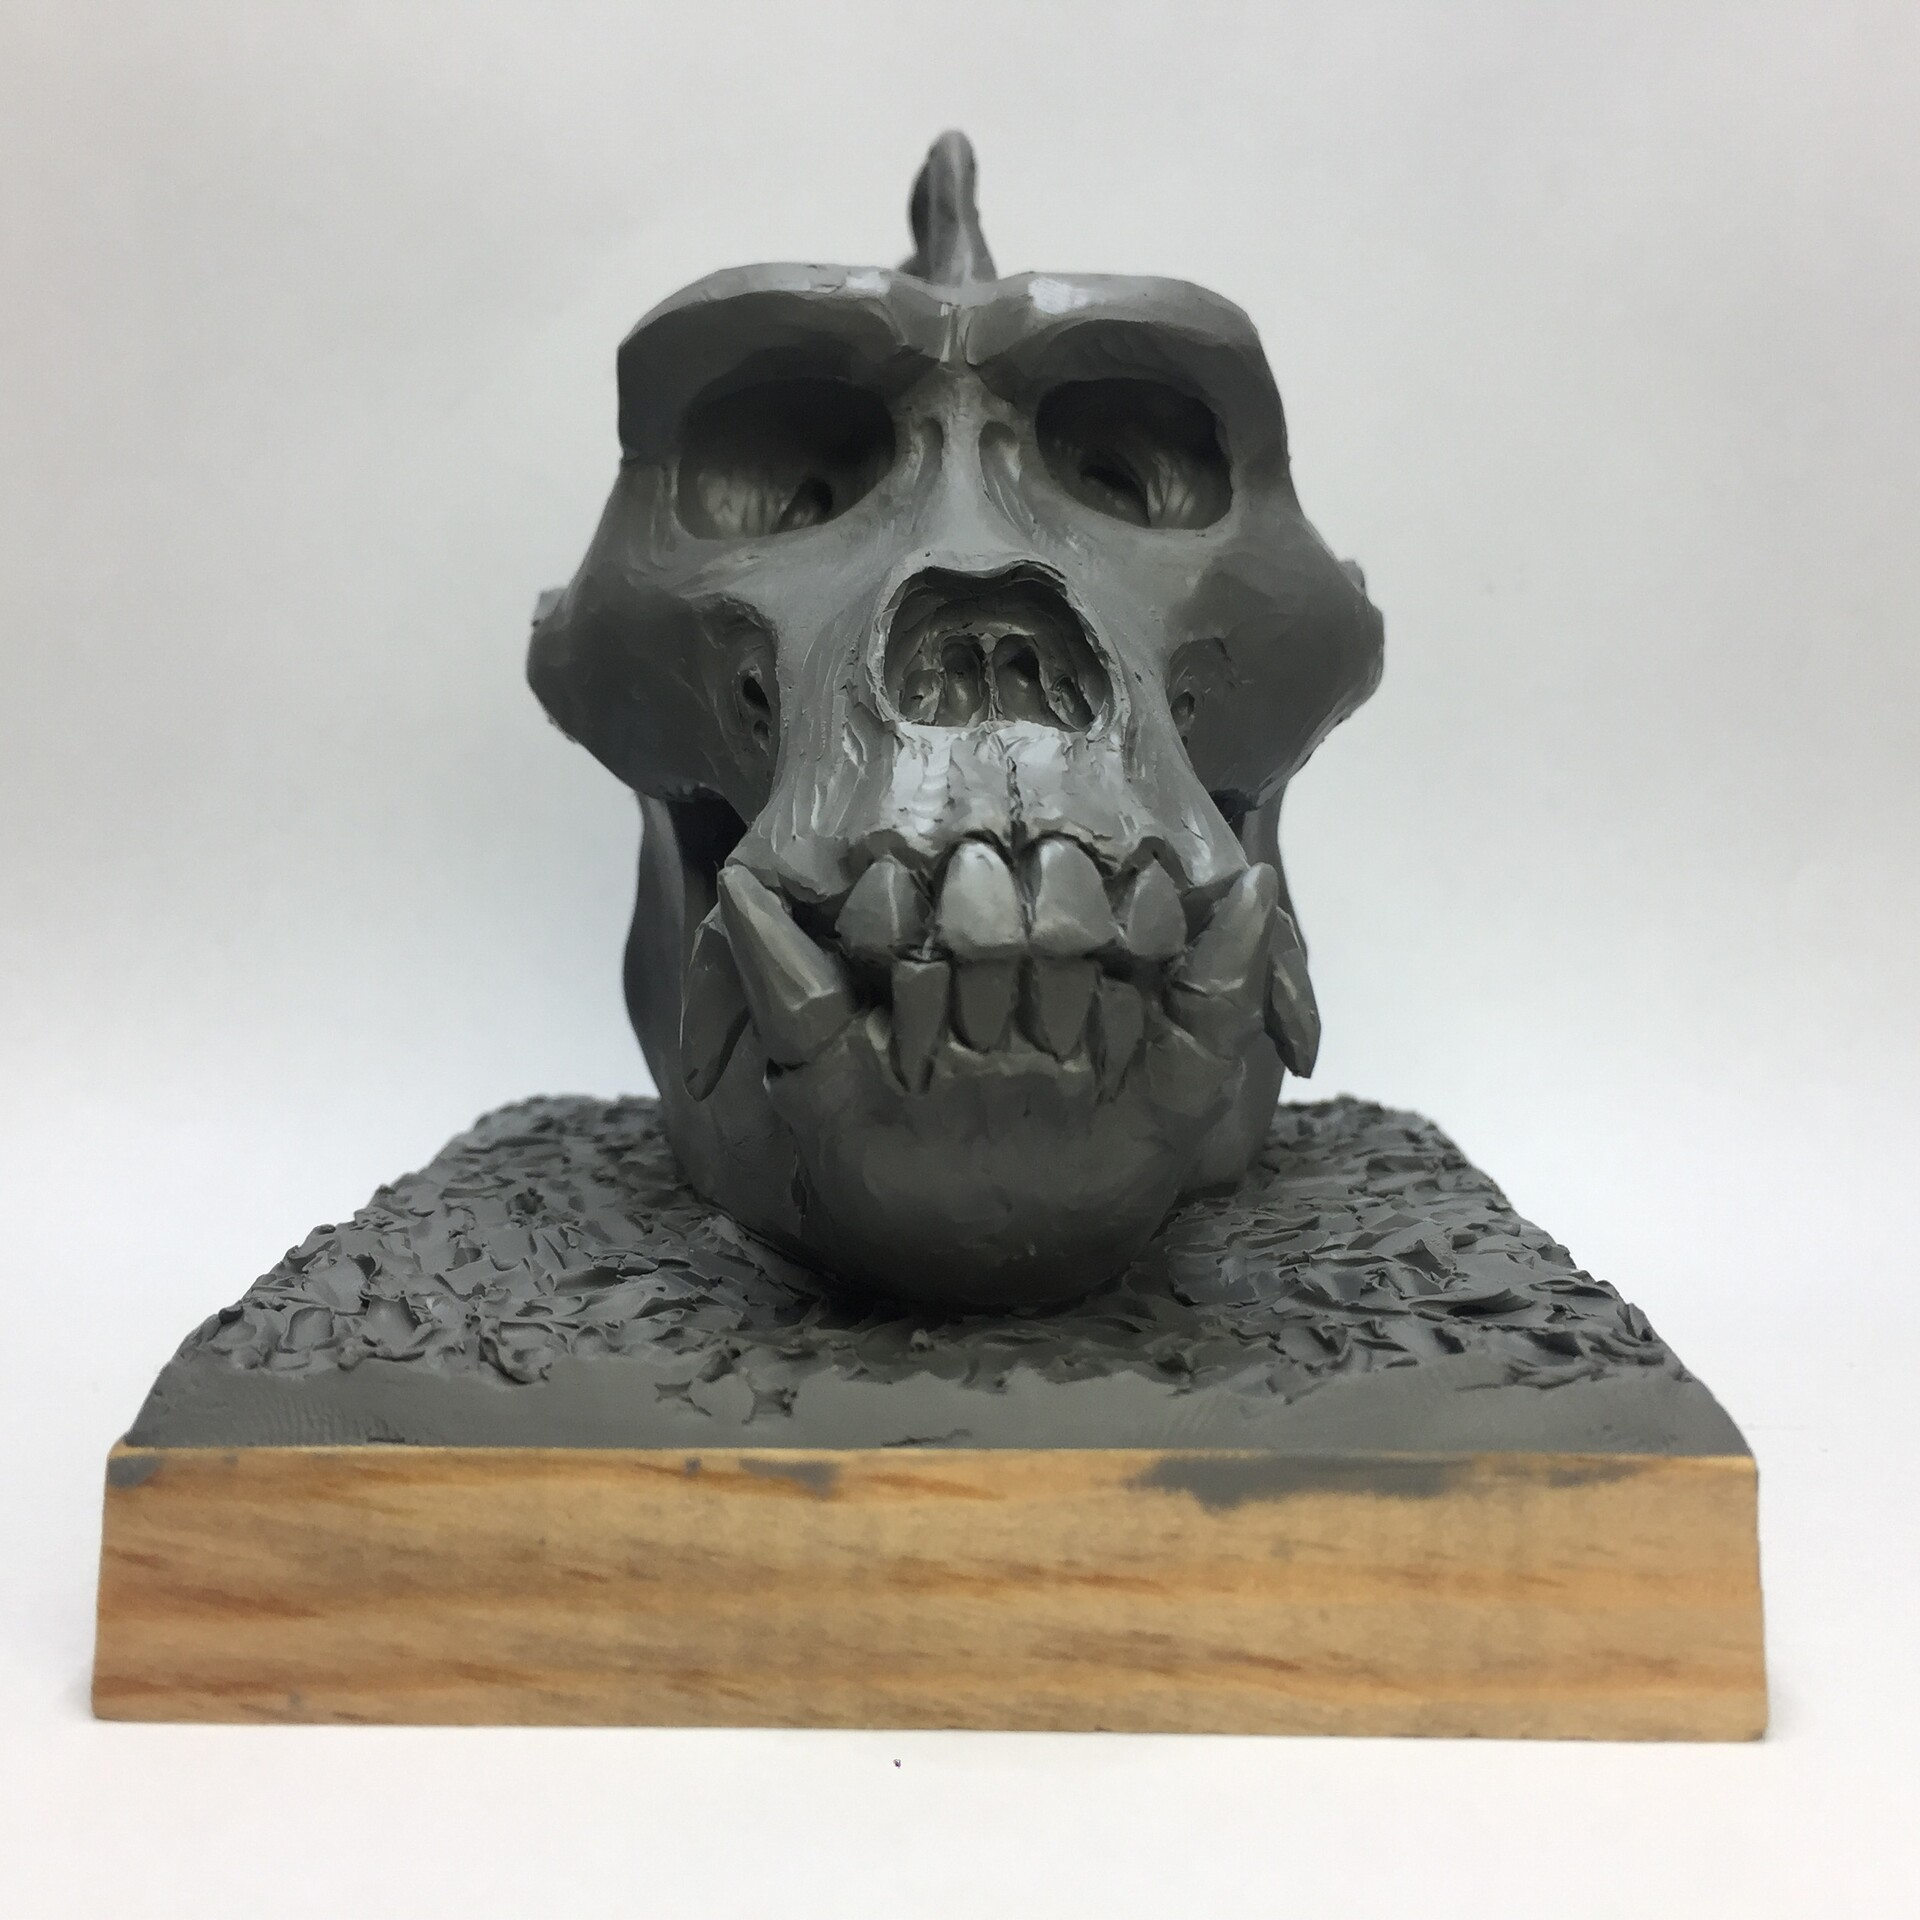 Just for fun and practicing knowledge about the gorilla skull. Would you like to have such a small part of the reference on your shelf?